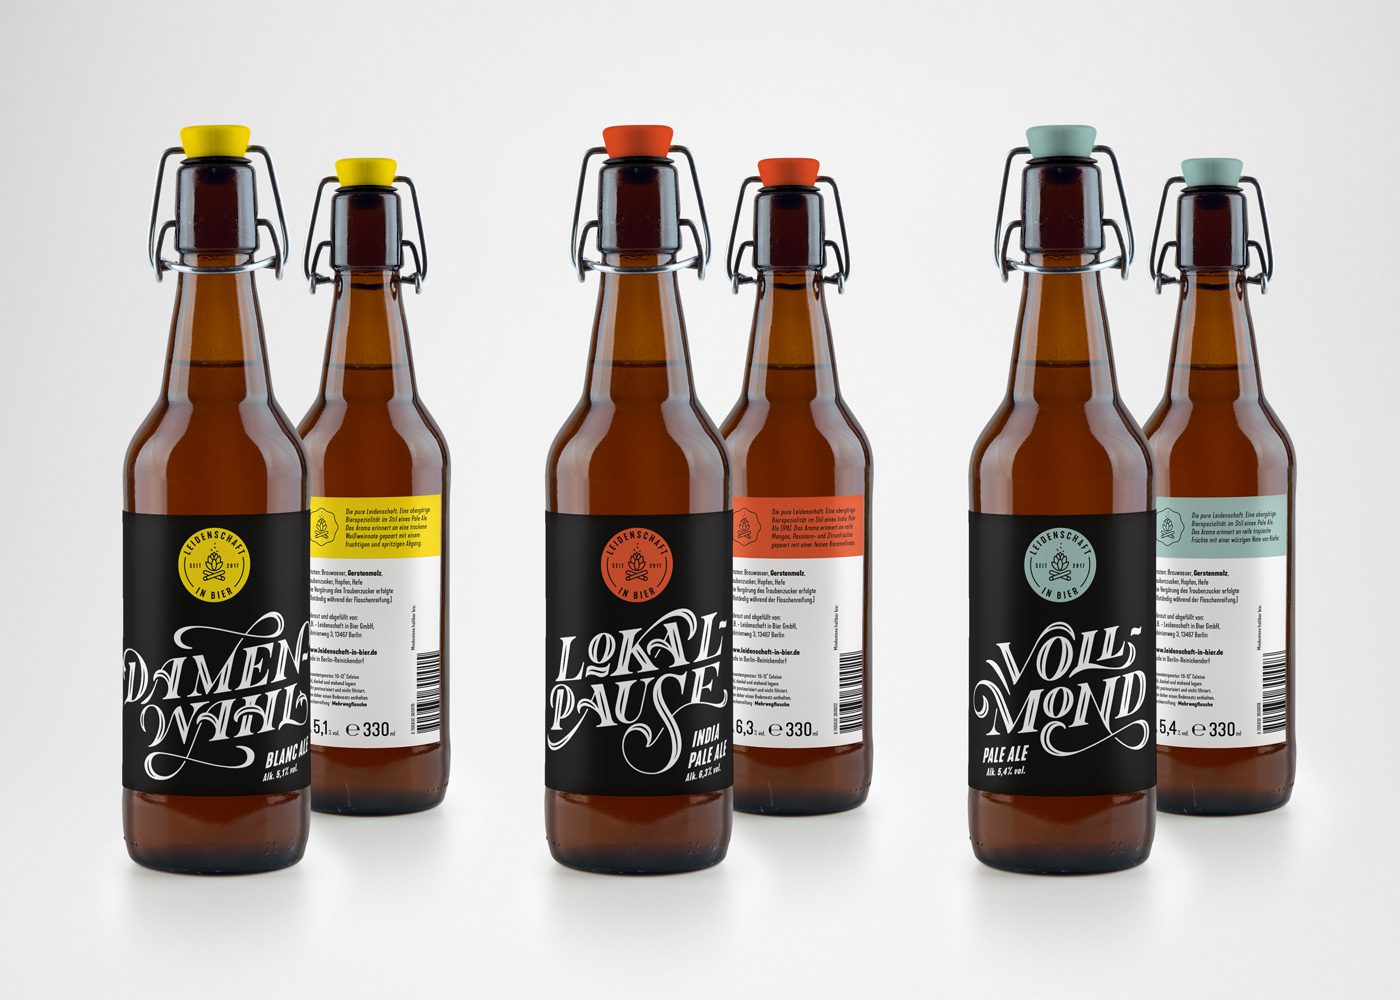 Leidenschaft in Bier - Beer Label Design by upstruct